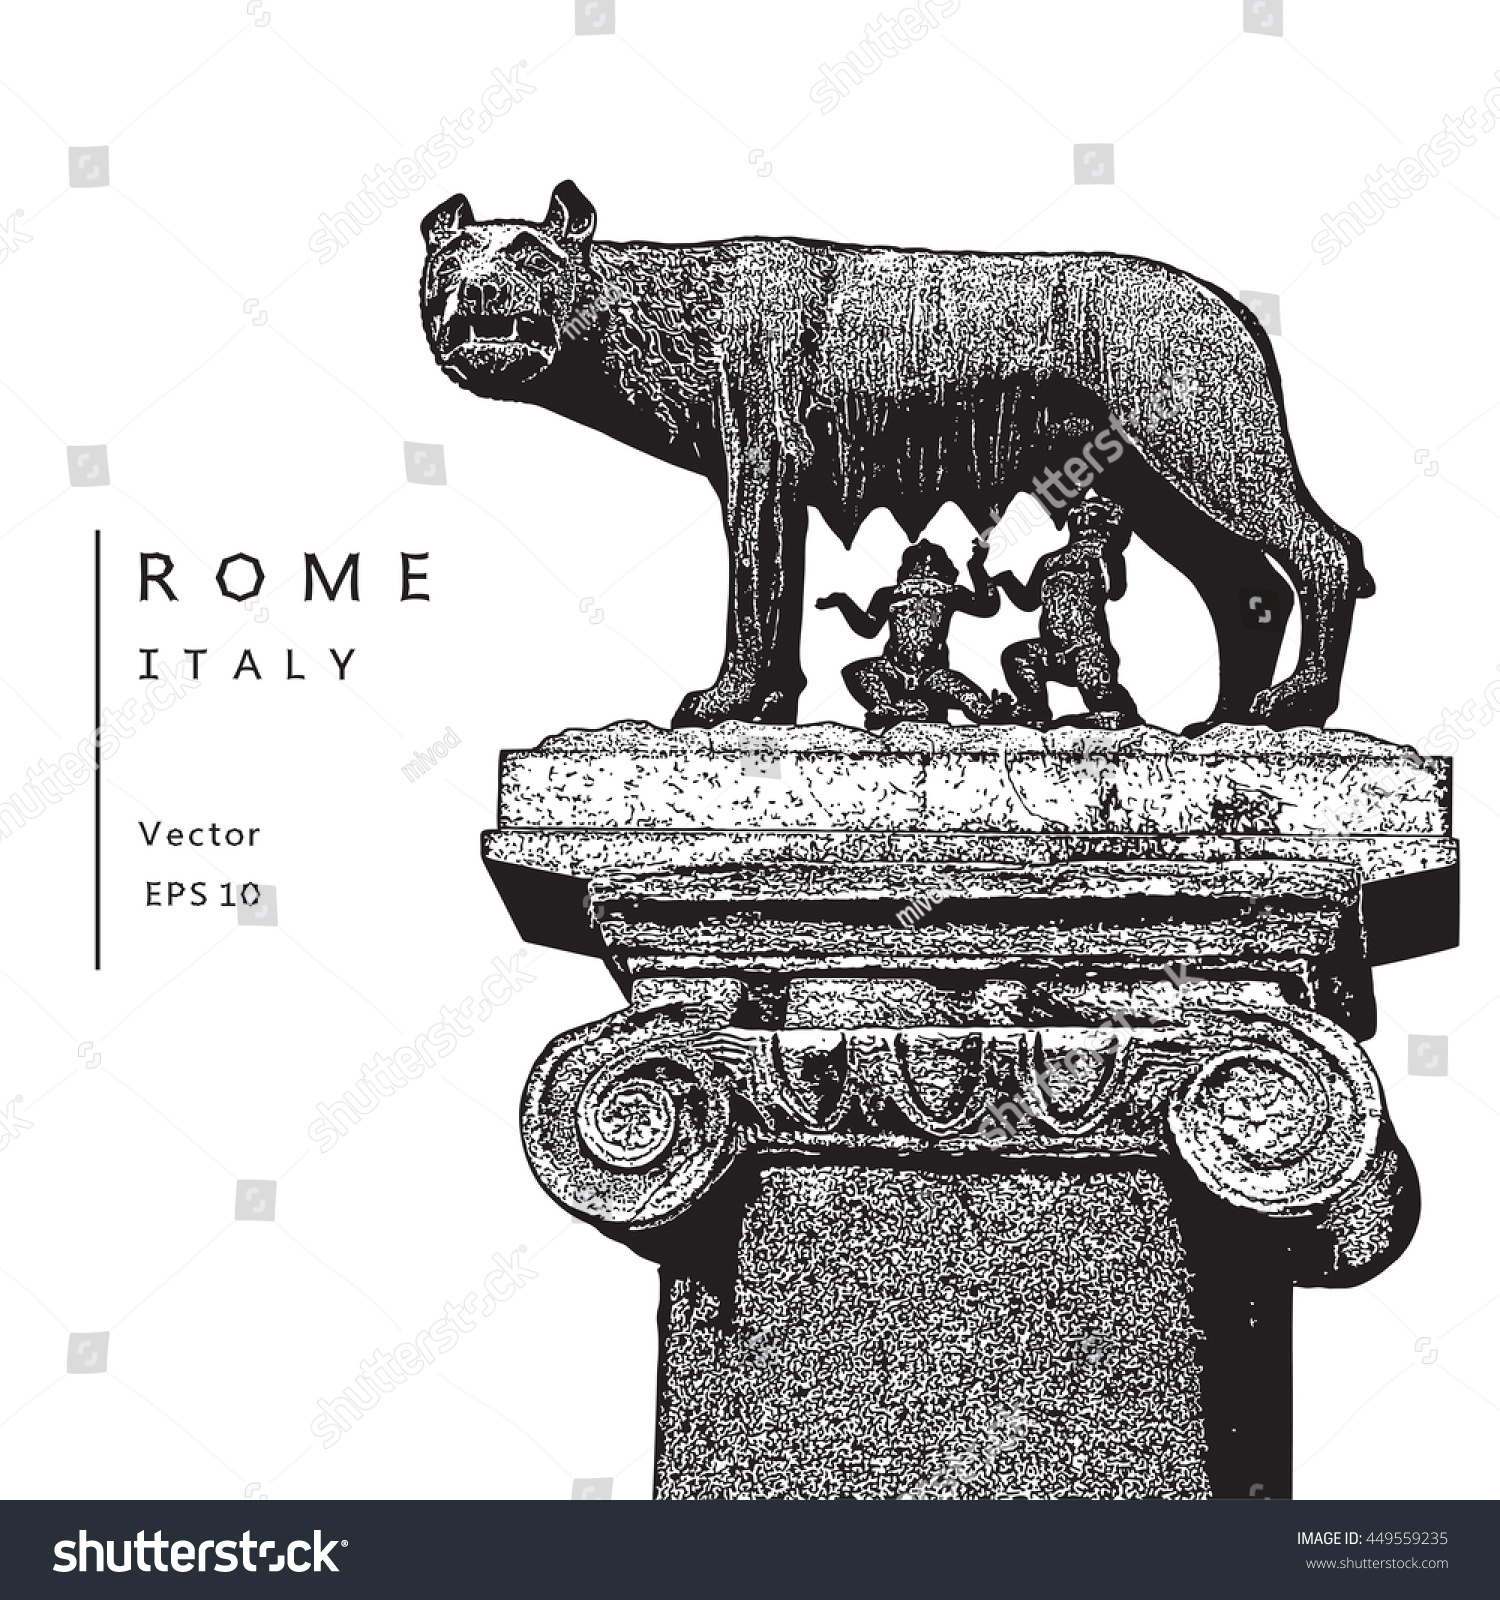 Capitoline Wolf Romulus Remus Symbol Rome Stock Vector Royalty Free